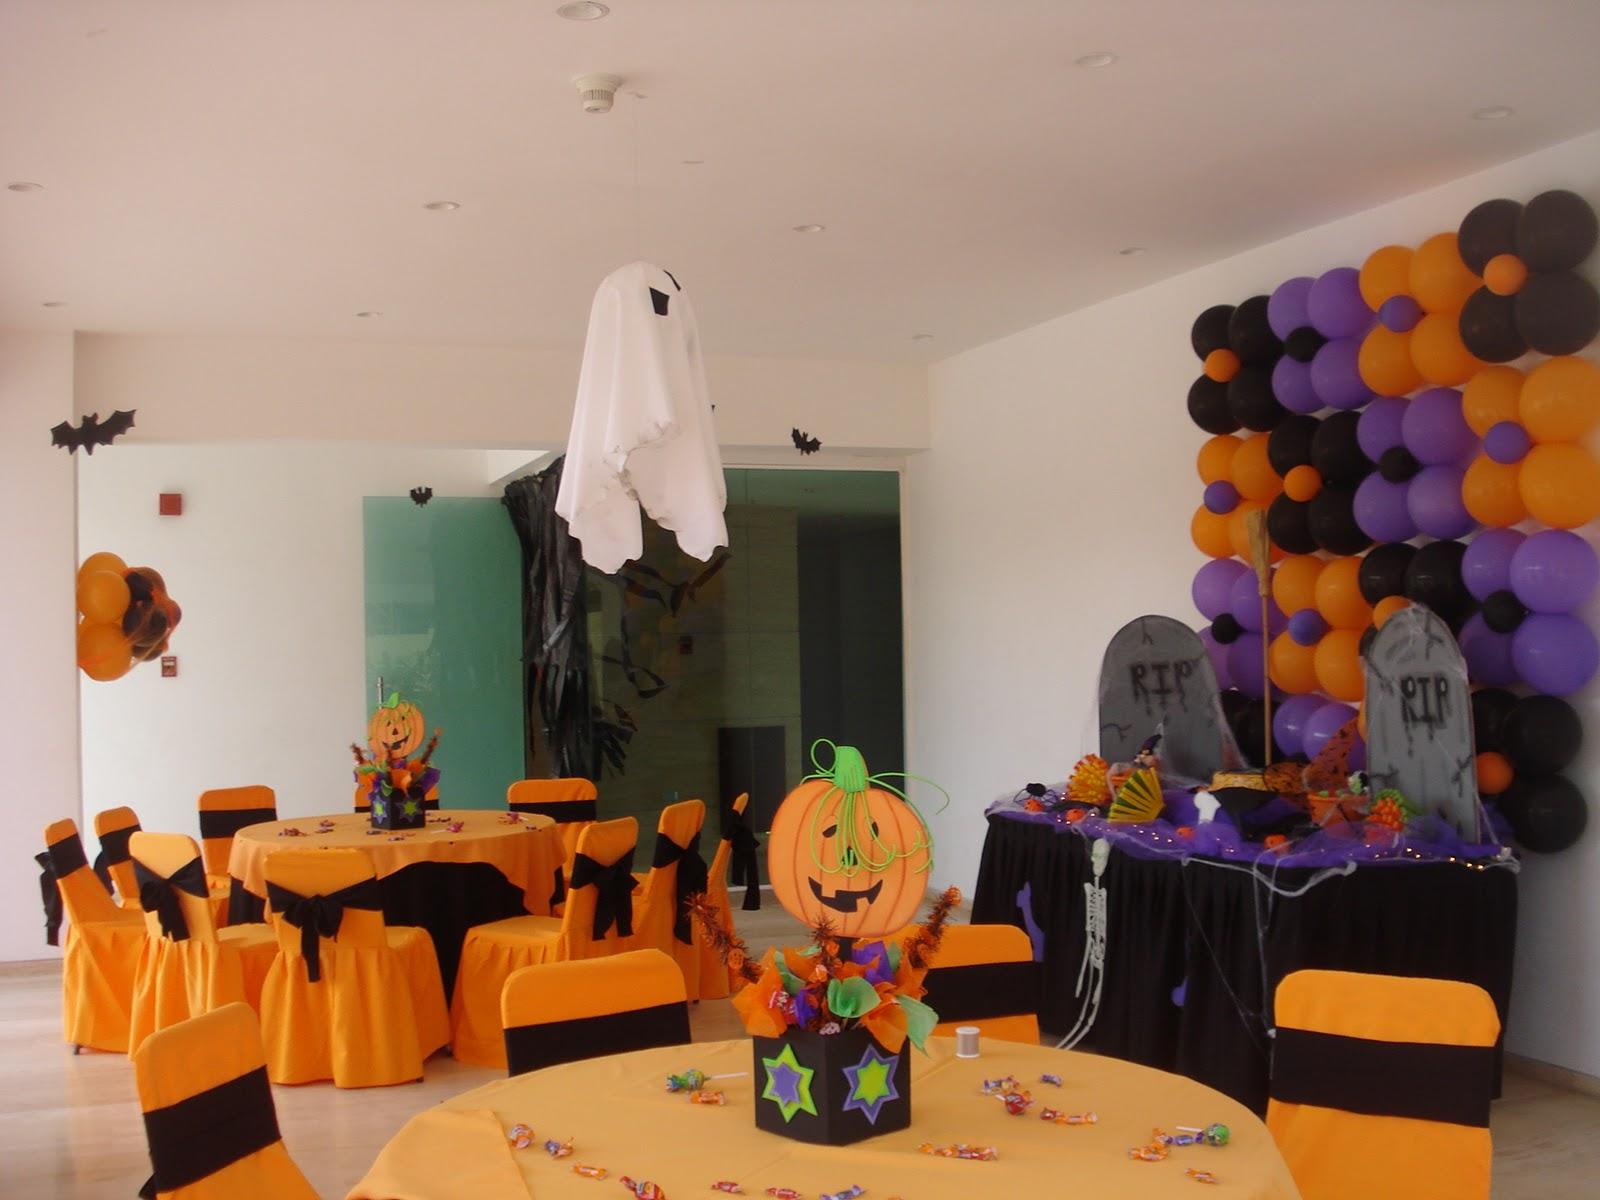 Kukuruchos decoraci n for Decoracion mesa halloween